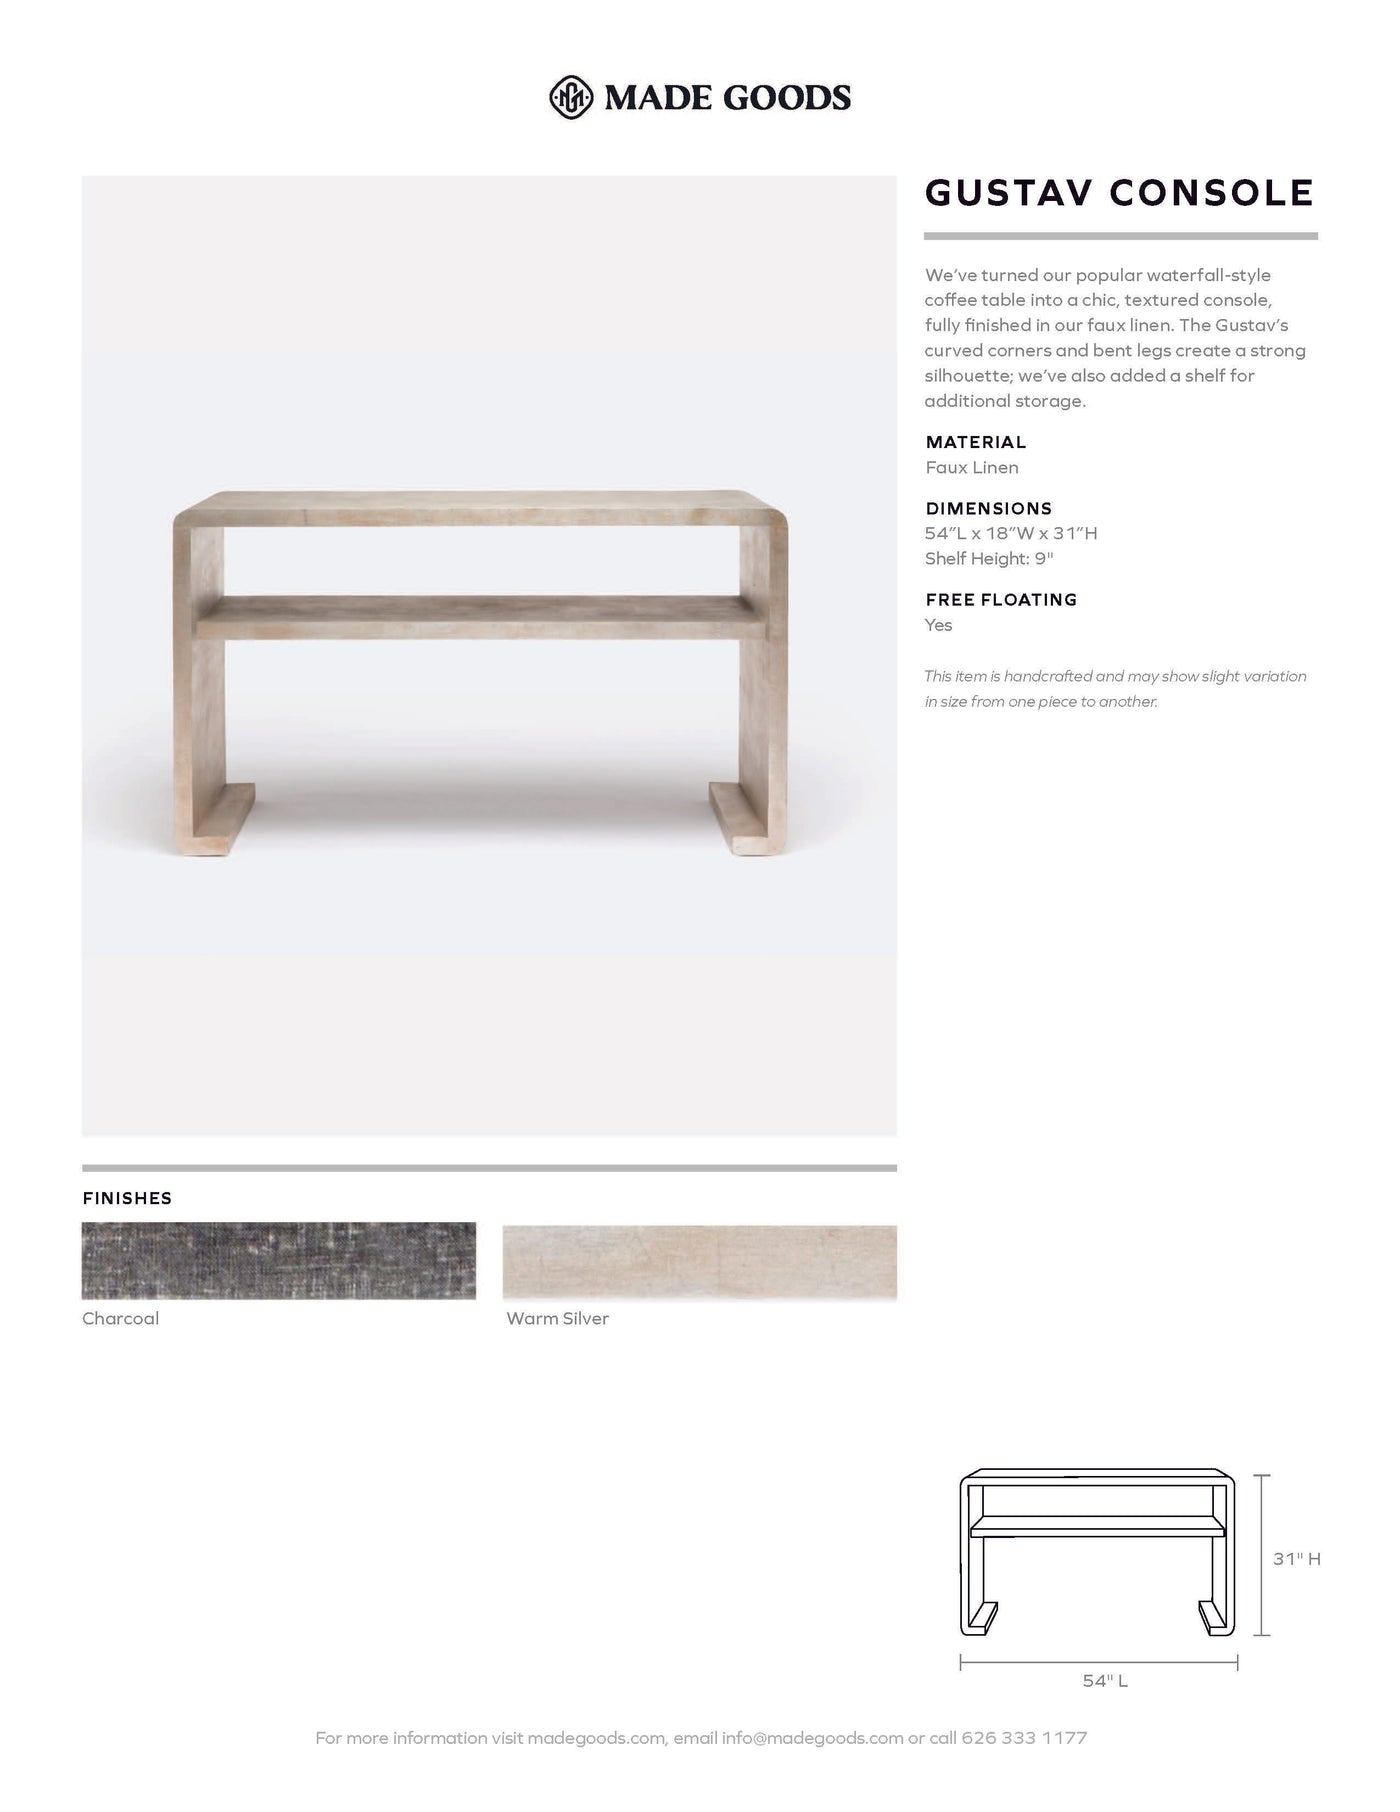 made goods Gustav console tearsheet